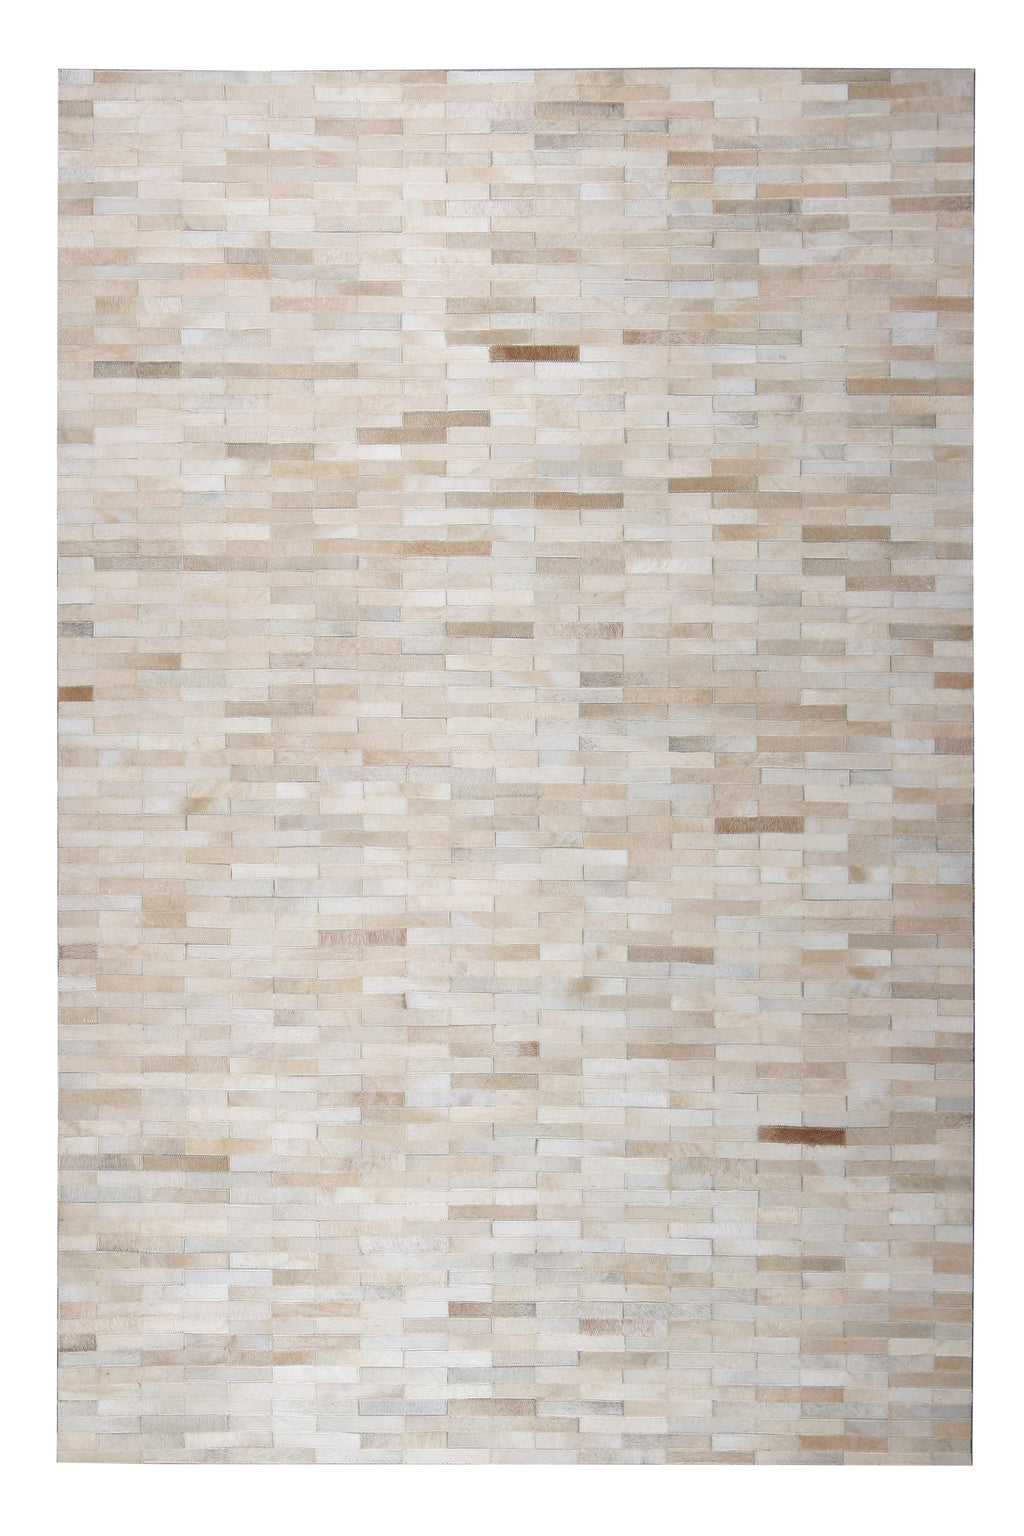 Handmade Natural Leather Patchwork Modern Brick Cowhide Area Rug